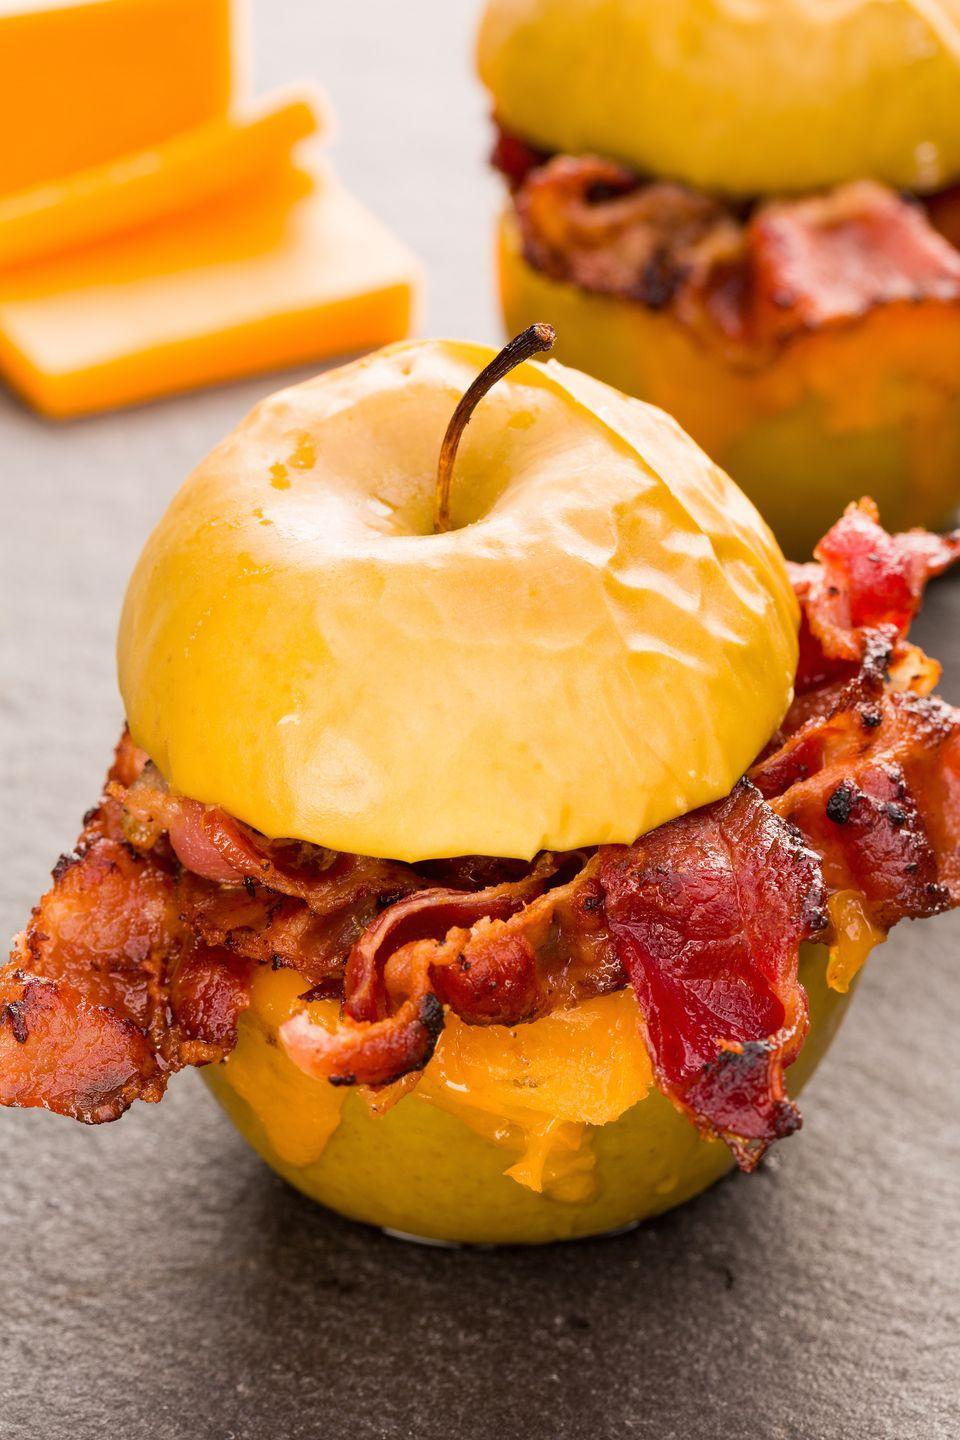 "<p>Bacon lovers, start your skillets: These halved baked apples are layered with crispy bacon and melted cheddar.</p><p>Get the recipe from <a href=""https://www.delish.com/cooking/recipe-ideas/recipes/a43873/baked-apples-with-bacon-and-cheddar-recipe/"" rel=""nofollow noopener"" target=""_blank"" data-ylk=""slk:Delish"" class=""link rapid-noclick-resp"">Delish</a>.</p>"